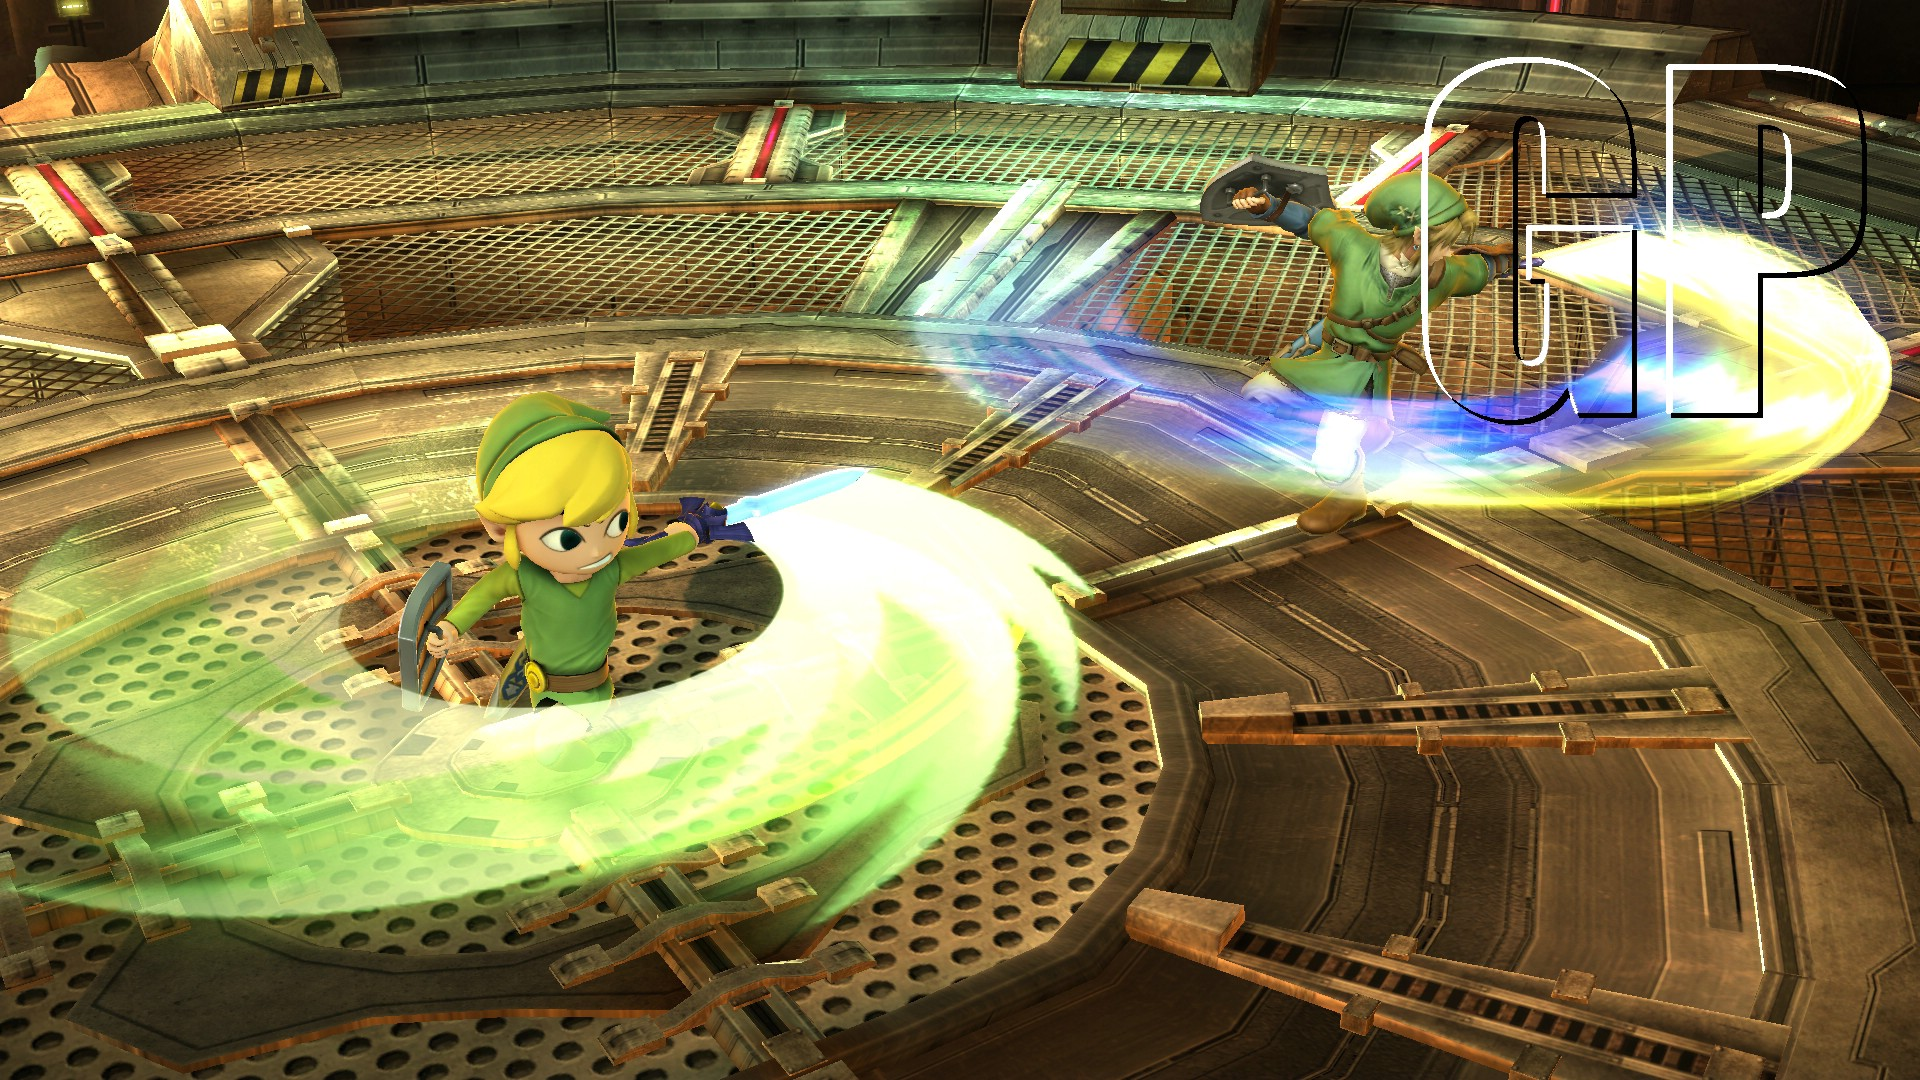 super smash bros. links